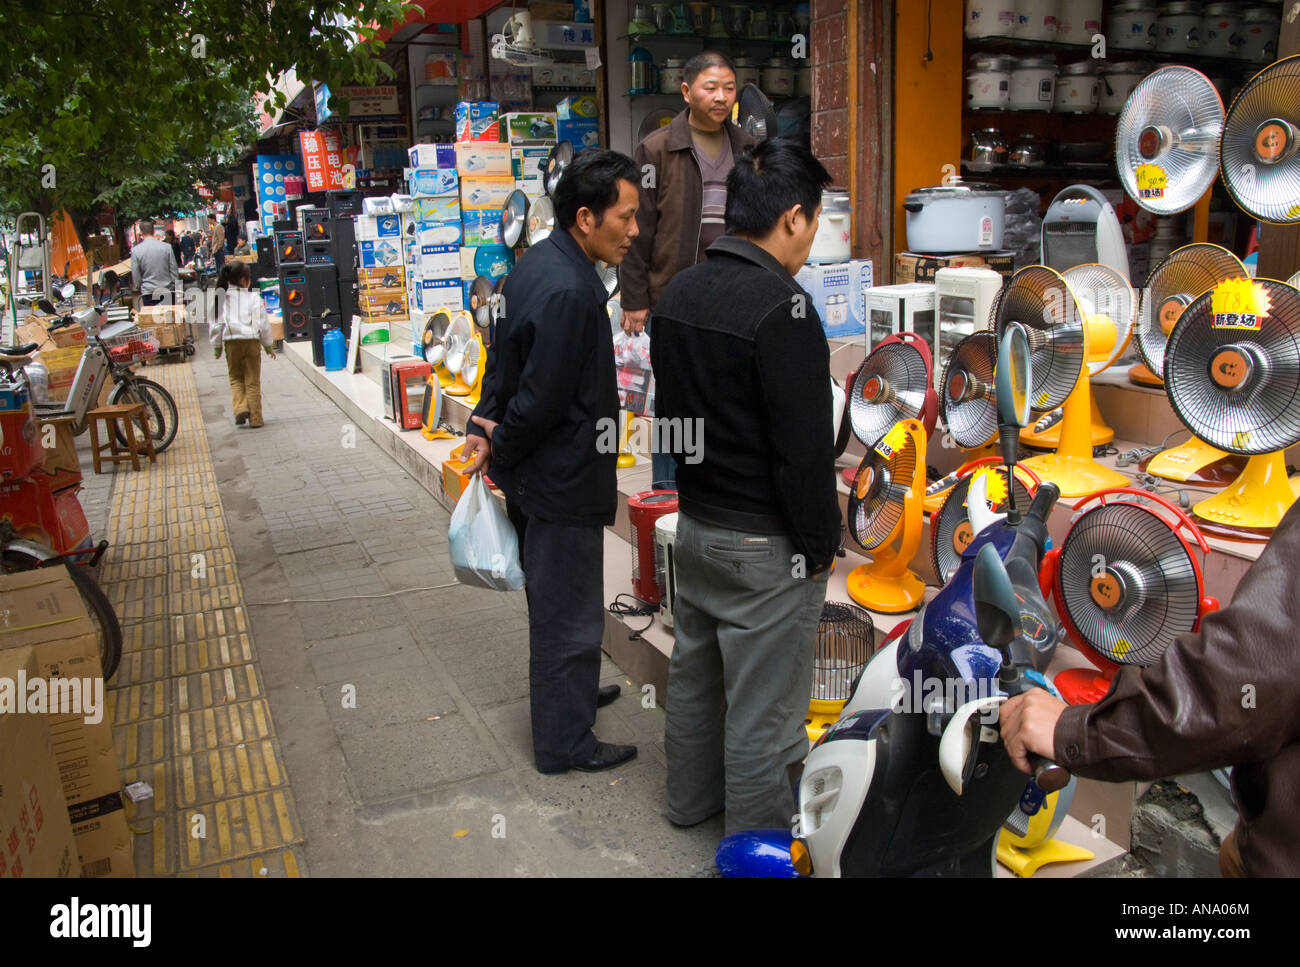 China Chengdu city center typical electrical appliance shops street - Stock Image